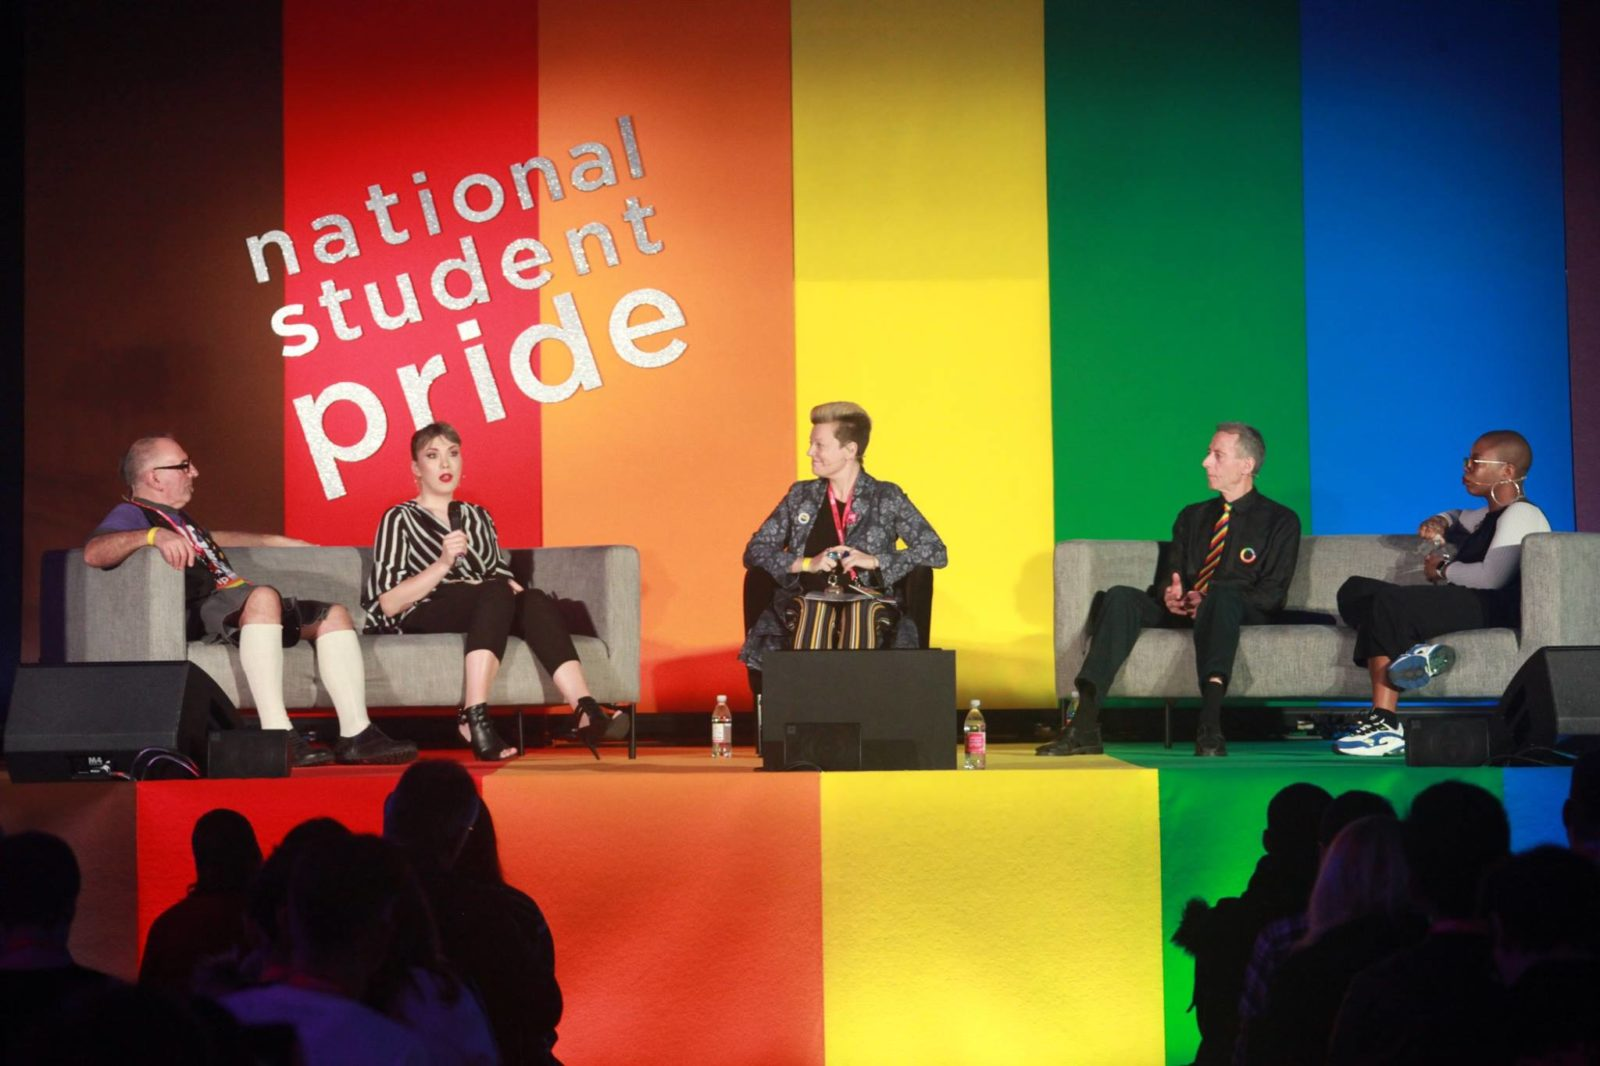 Paris Lees and Peter Tatchell at National Student Pride 2019